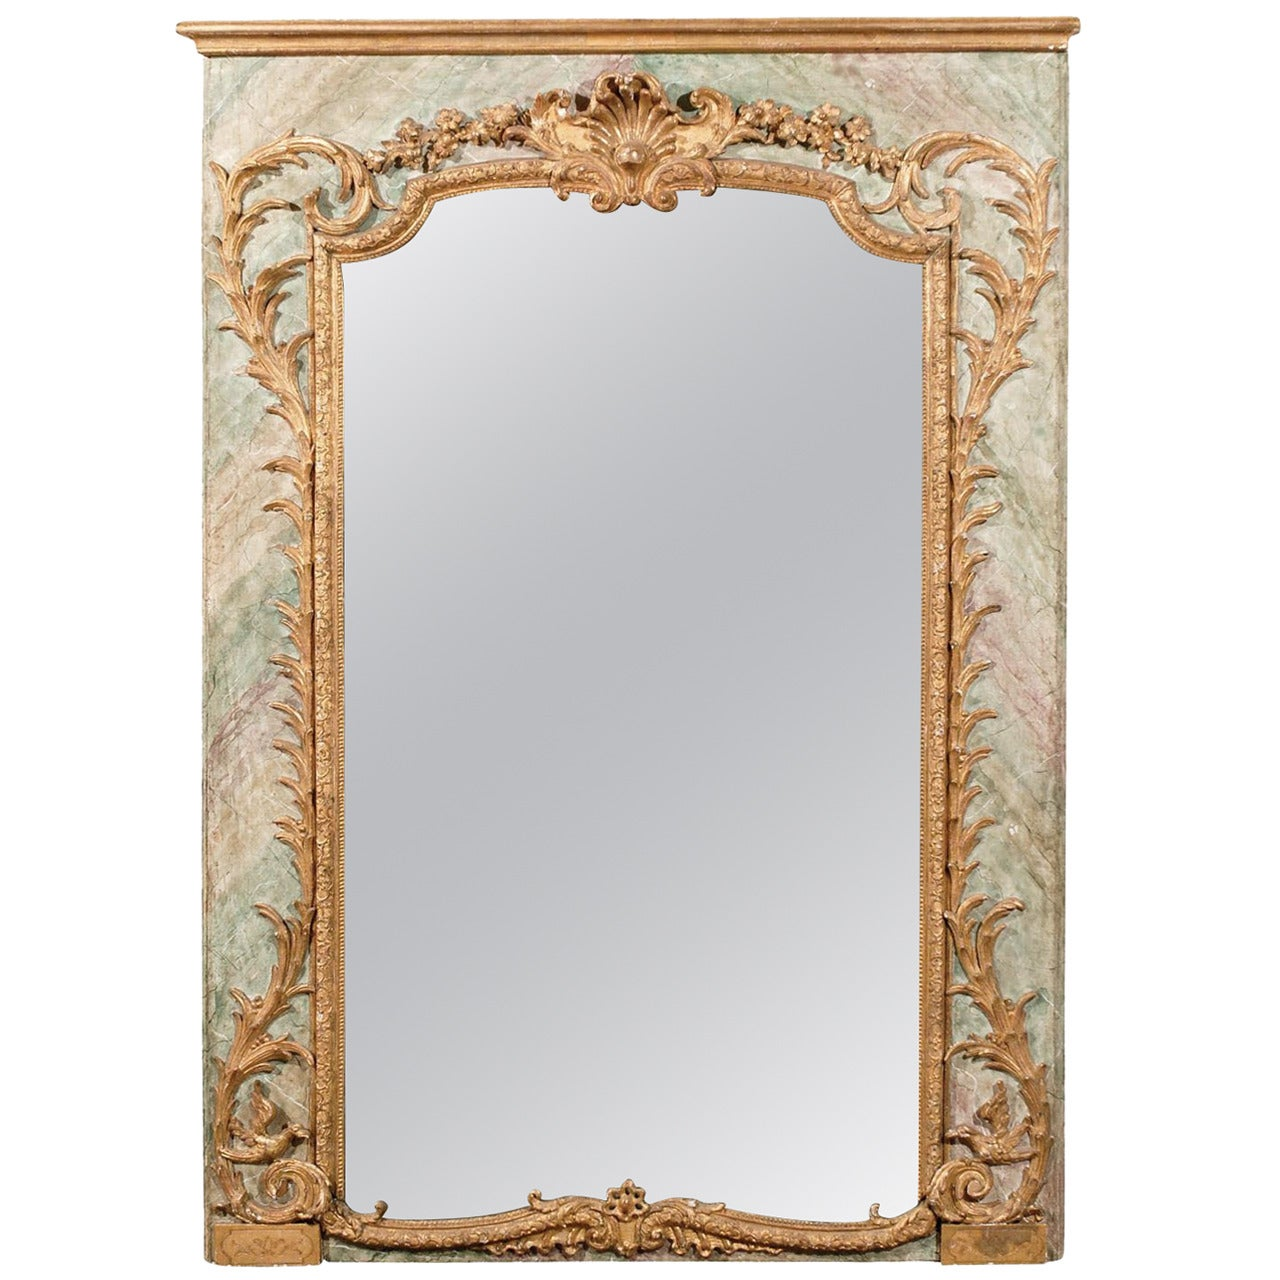 An Exquisite Italian Late 18th Century Rocaille Style Mirror, Beautifully Adorn